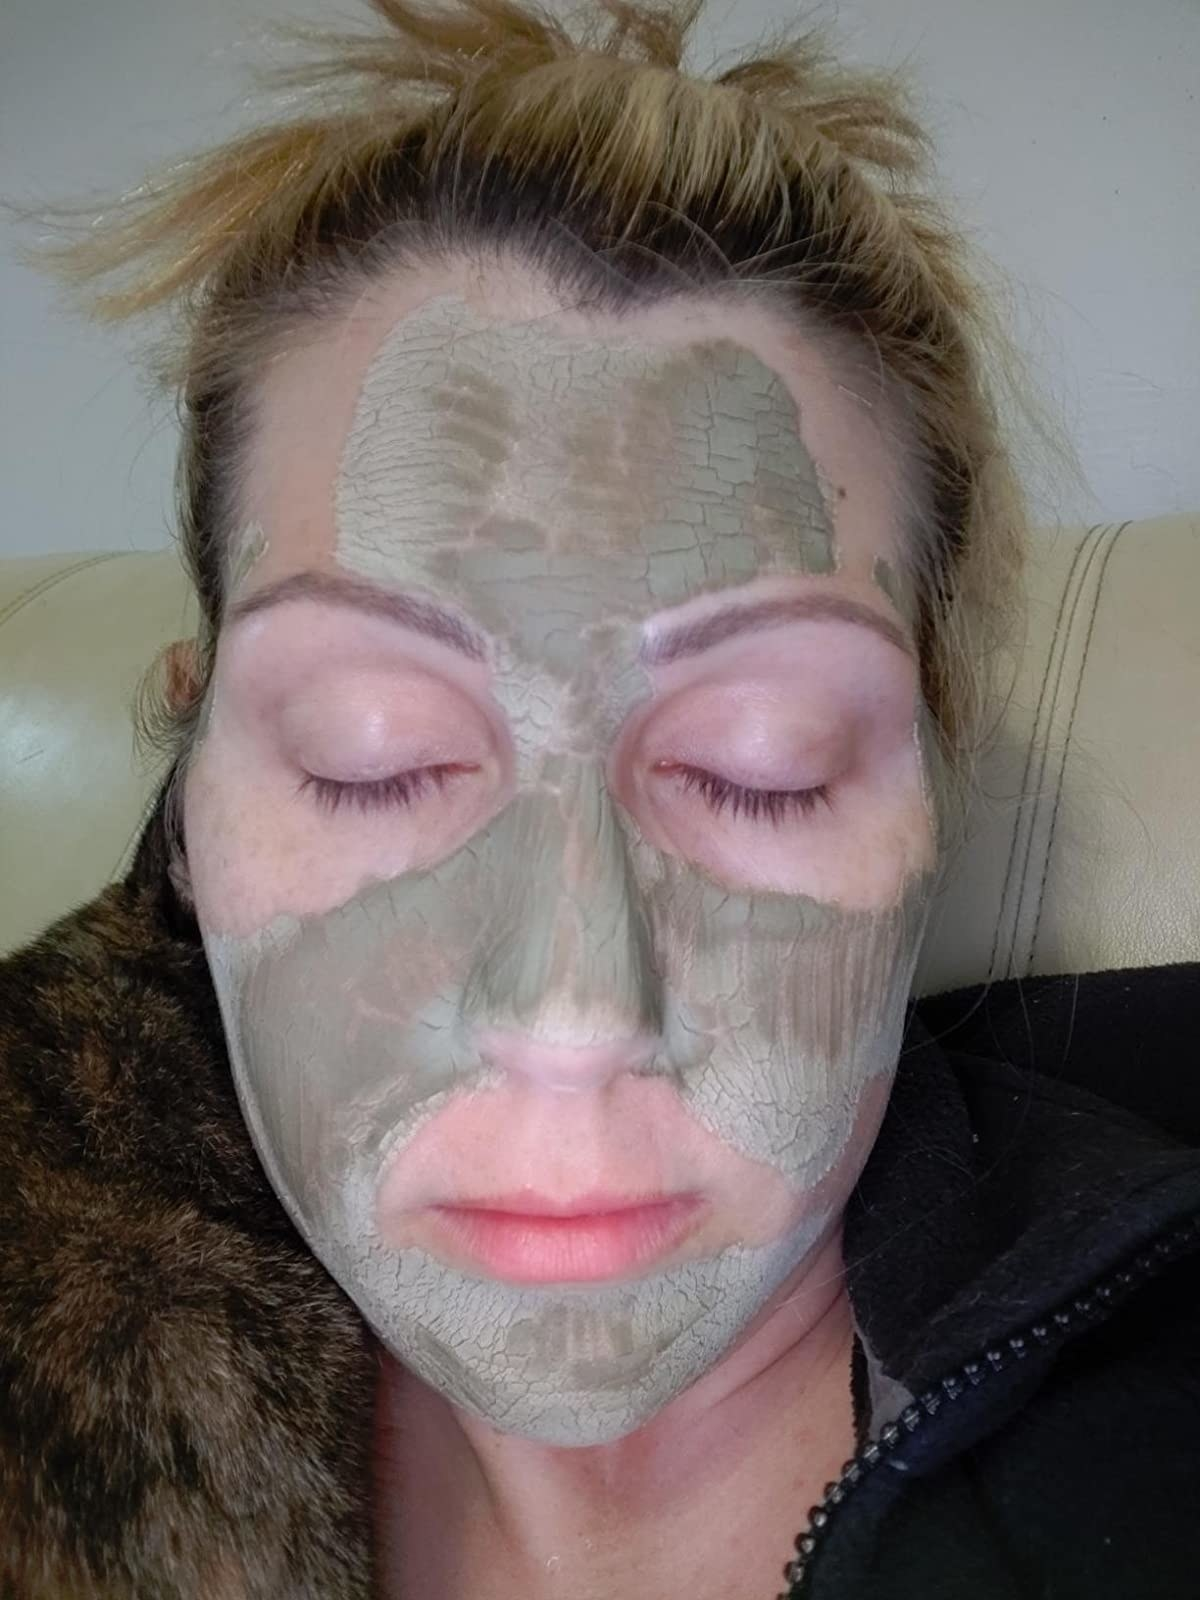 A reviewer with the light green clay mask on their face